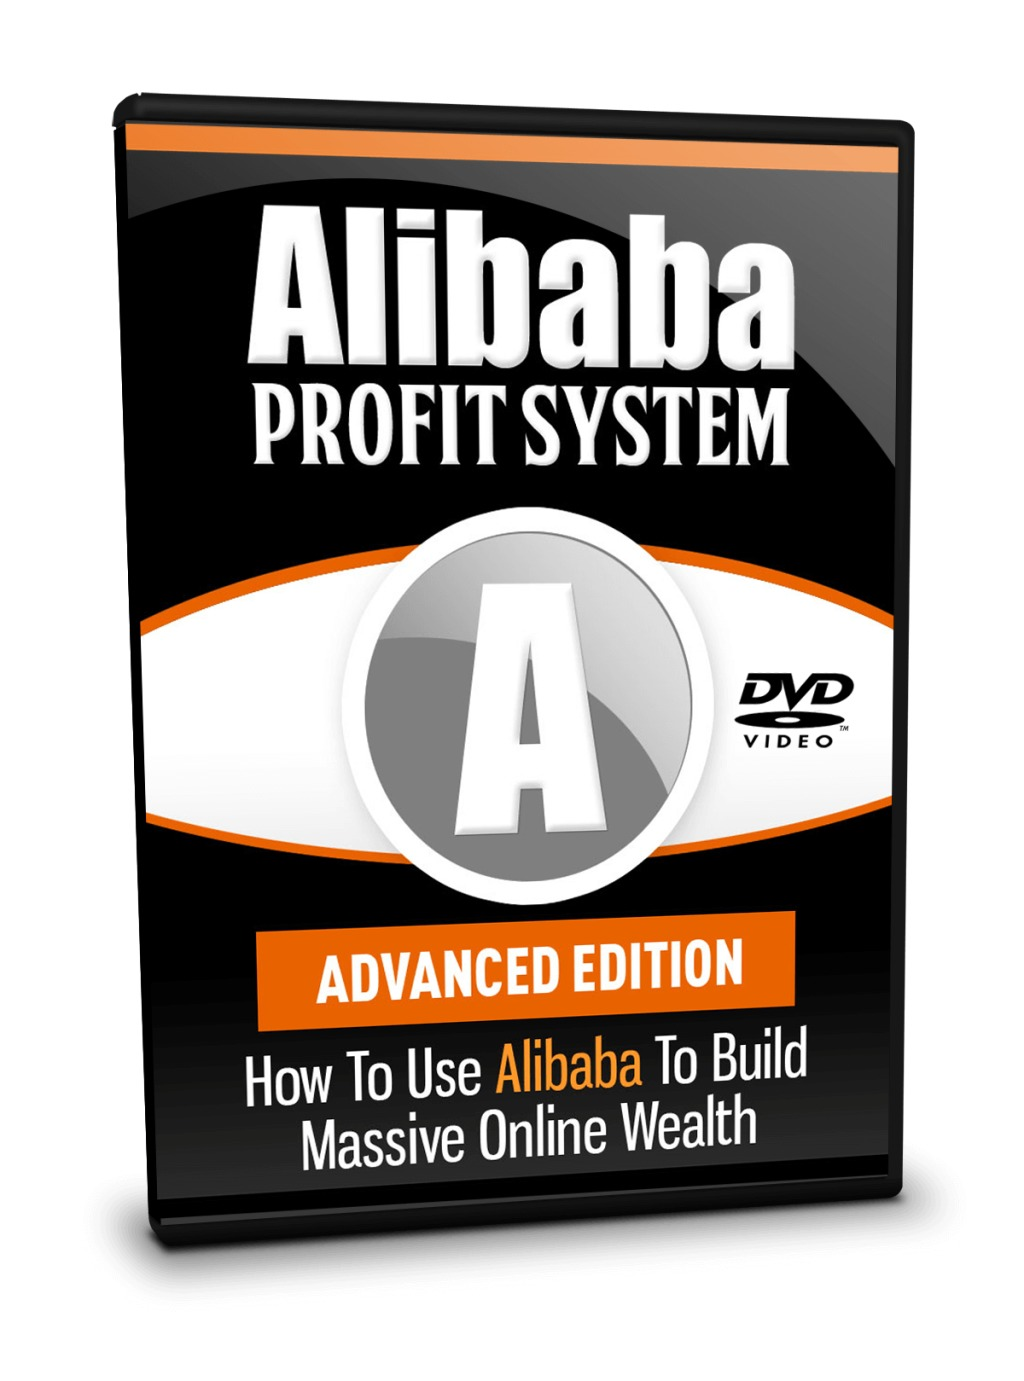 Alibaba Profit System Advanced